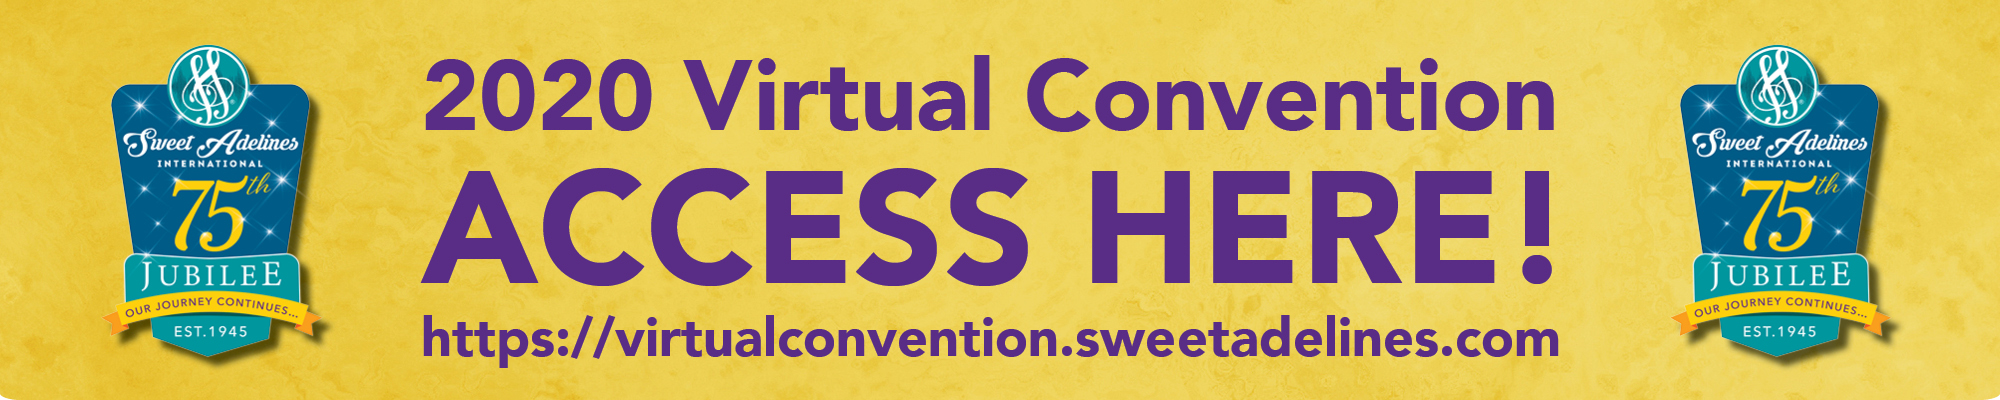 2020 Virtual Convention - Access Here